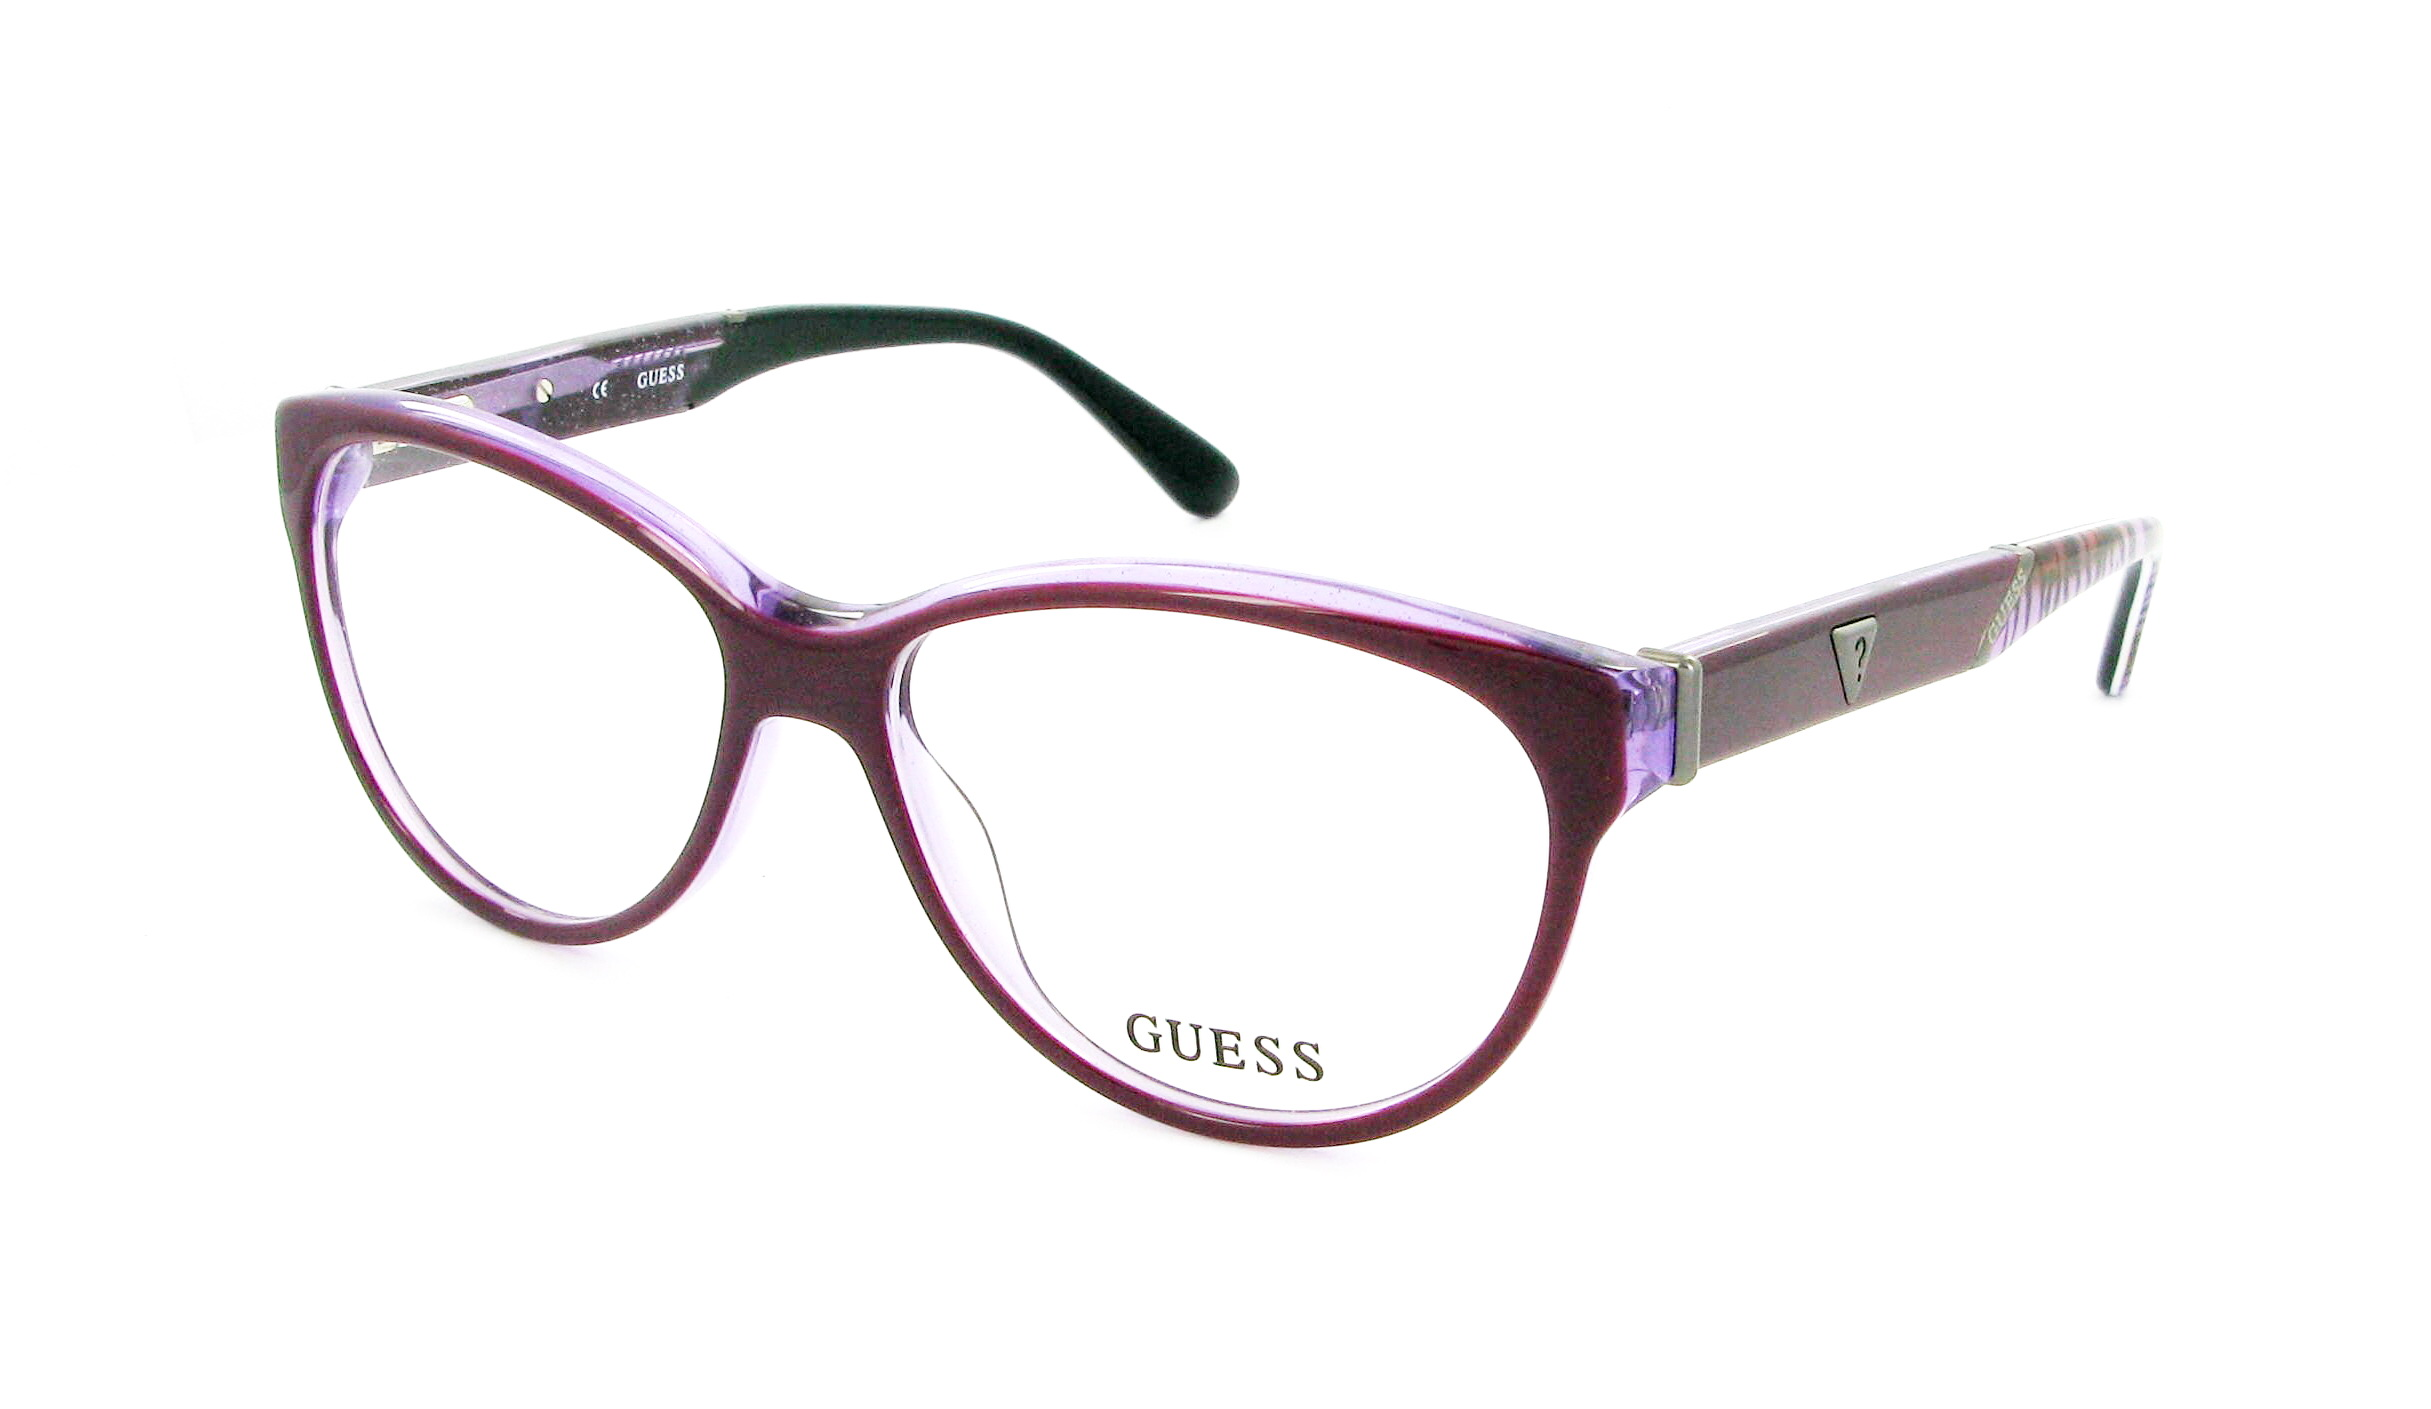 lunettes de vue guess gu 2311 pur 54 14 femme violet ovale. Black Bedroom Furniture Sets. Home Design Ideas